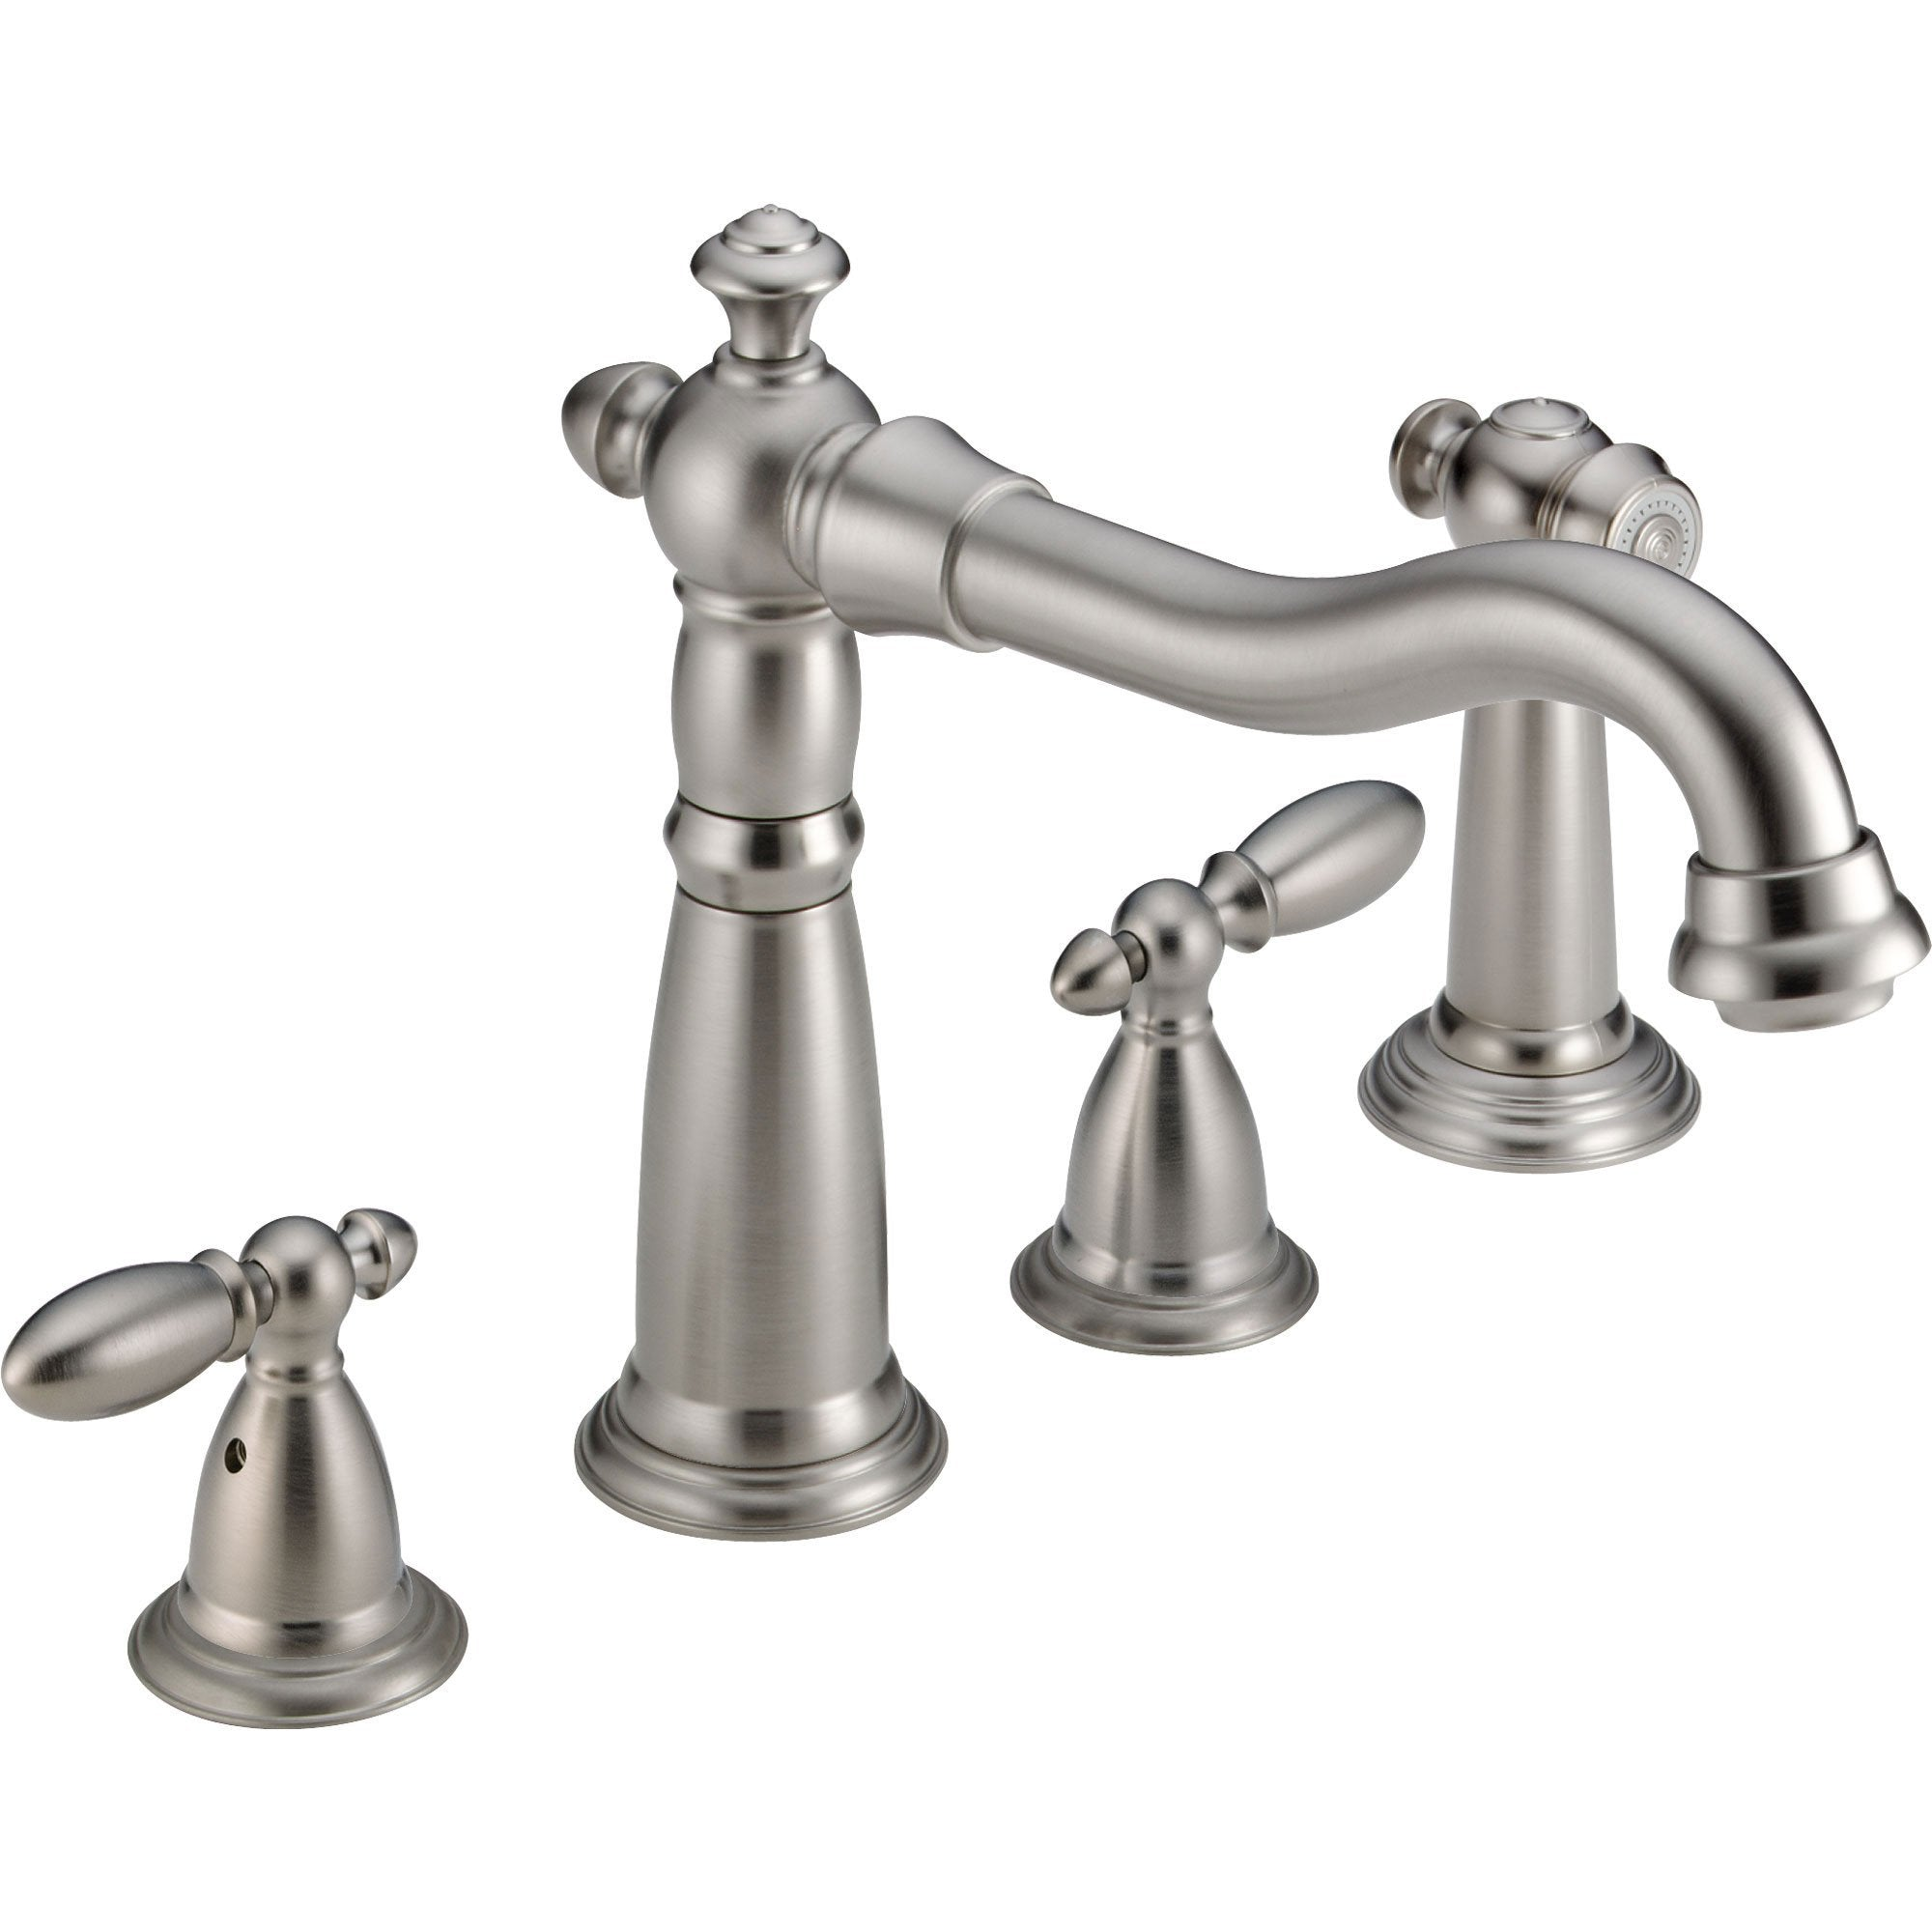 Delta Victorian Stainless Steel Finish Widespread Kitchen Faucet w/ Spray 556046